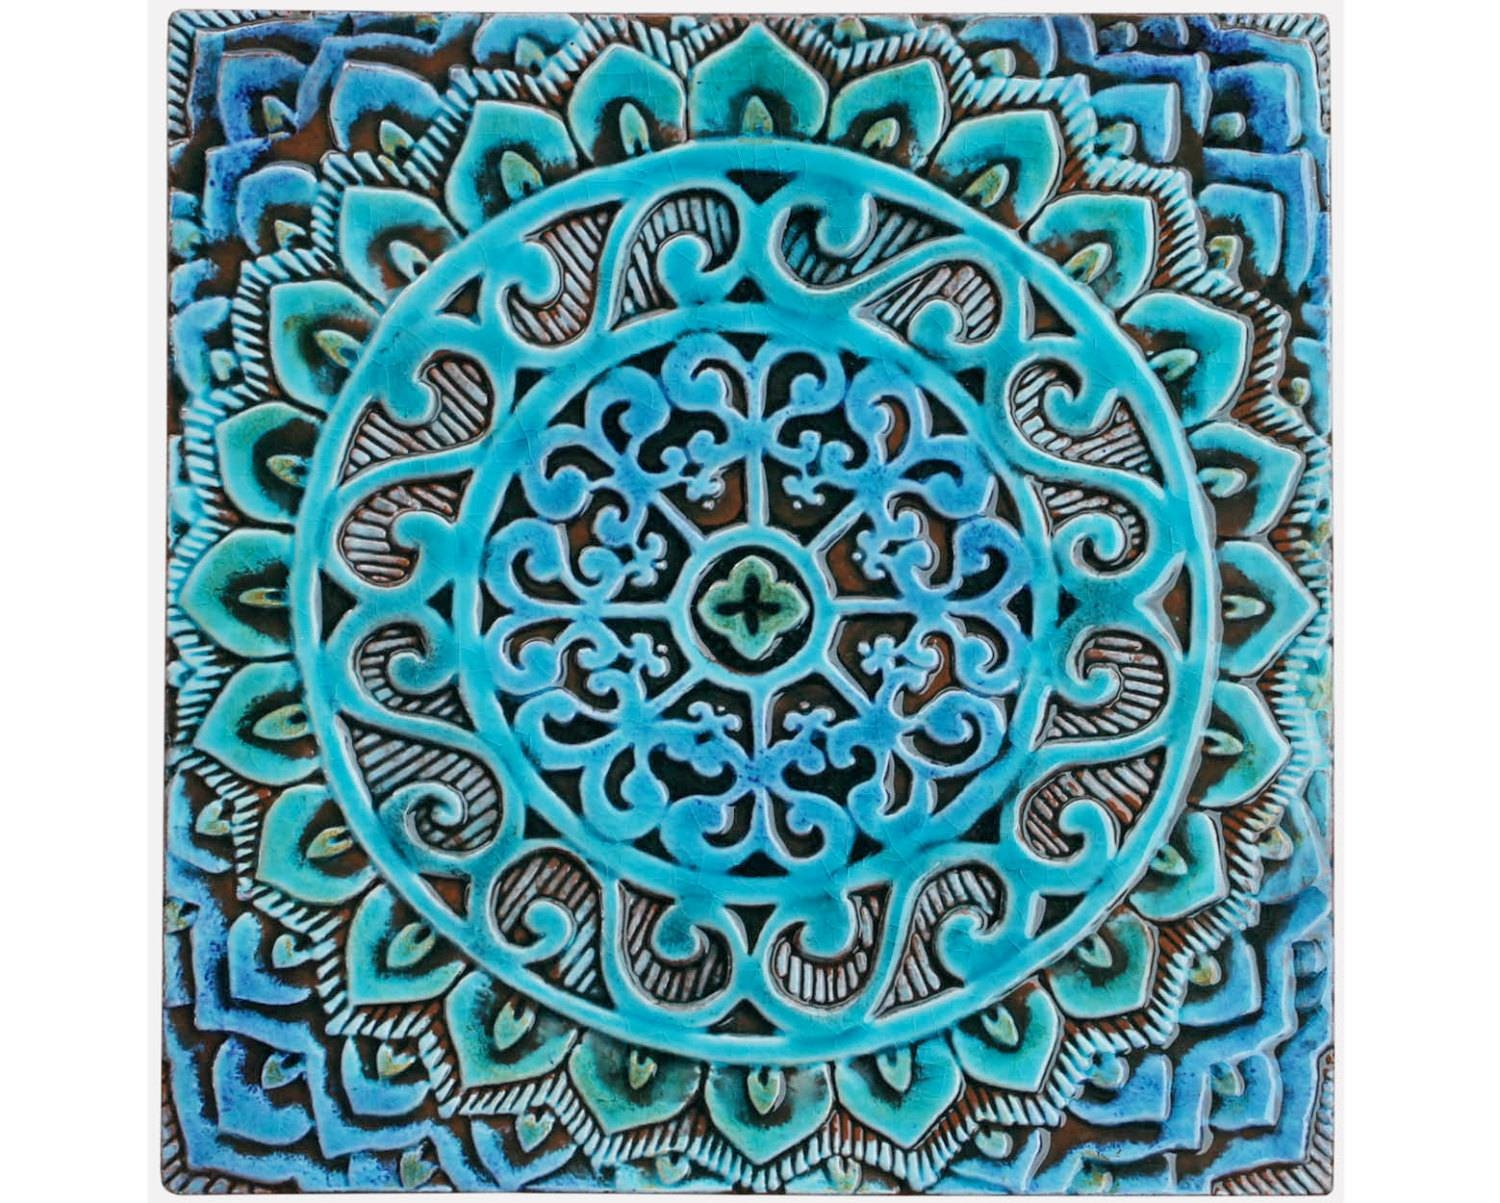 Mandala Wall Hanging Made From Ceramic Exterior Wall Art Inside Latest Large Ceramic Wall Art (View 14 of 25)